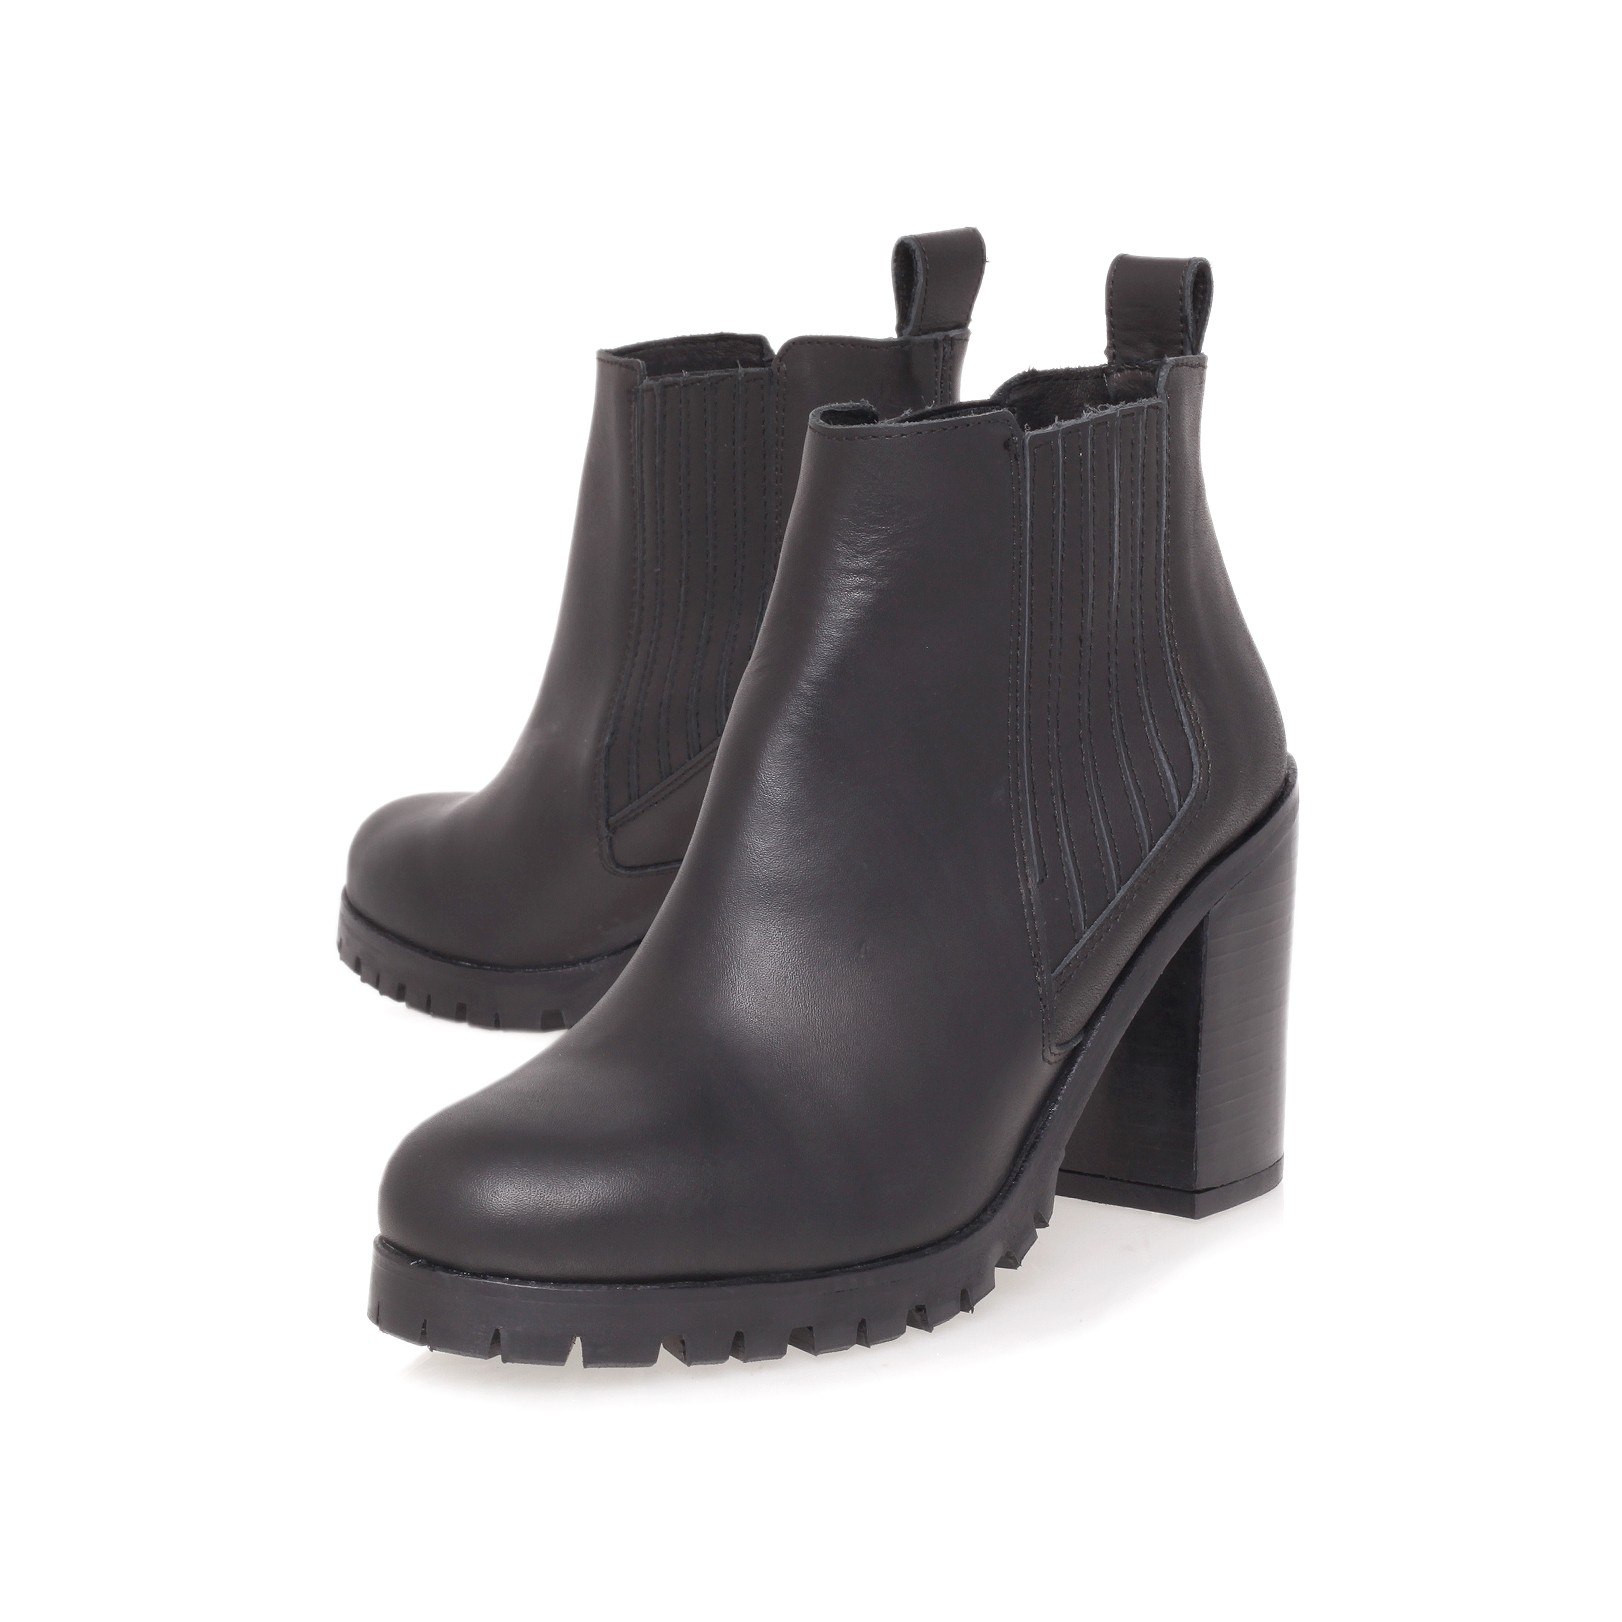 Kurt Geiger | STAR Black High Heel Ankle Boots by KG Kurt Geiger